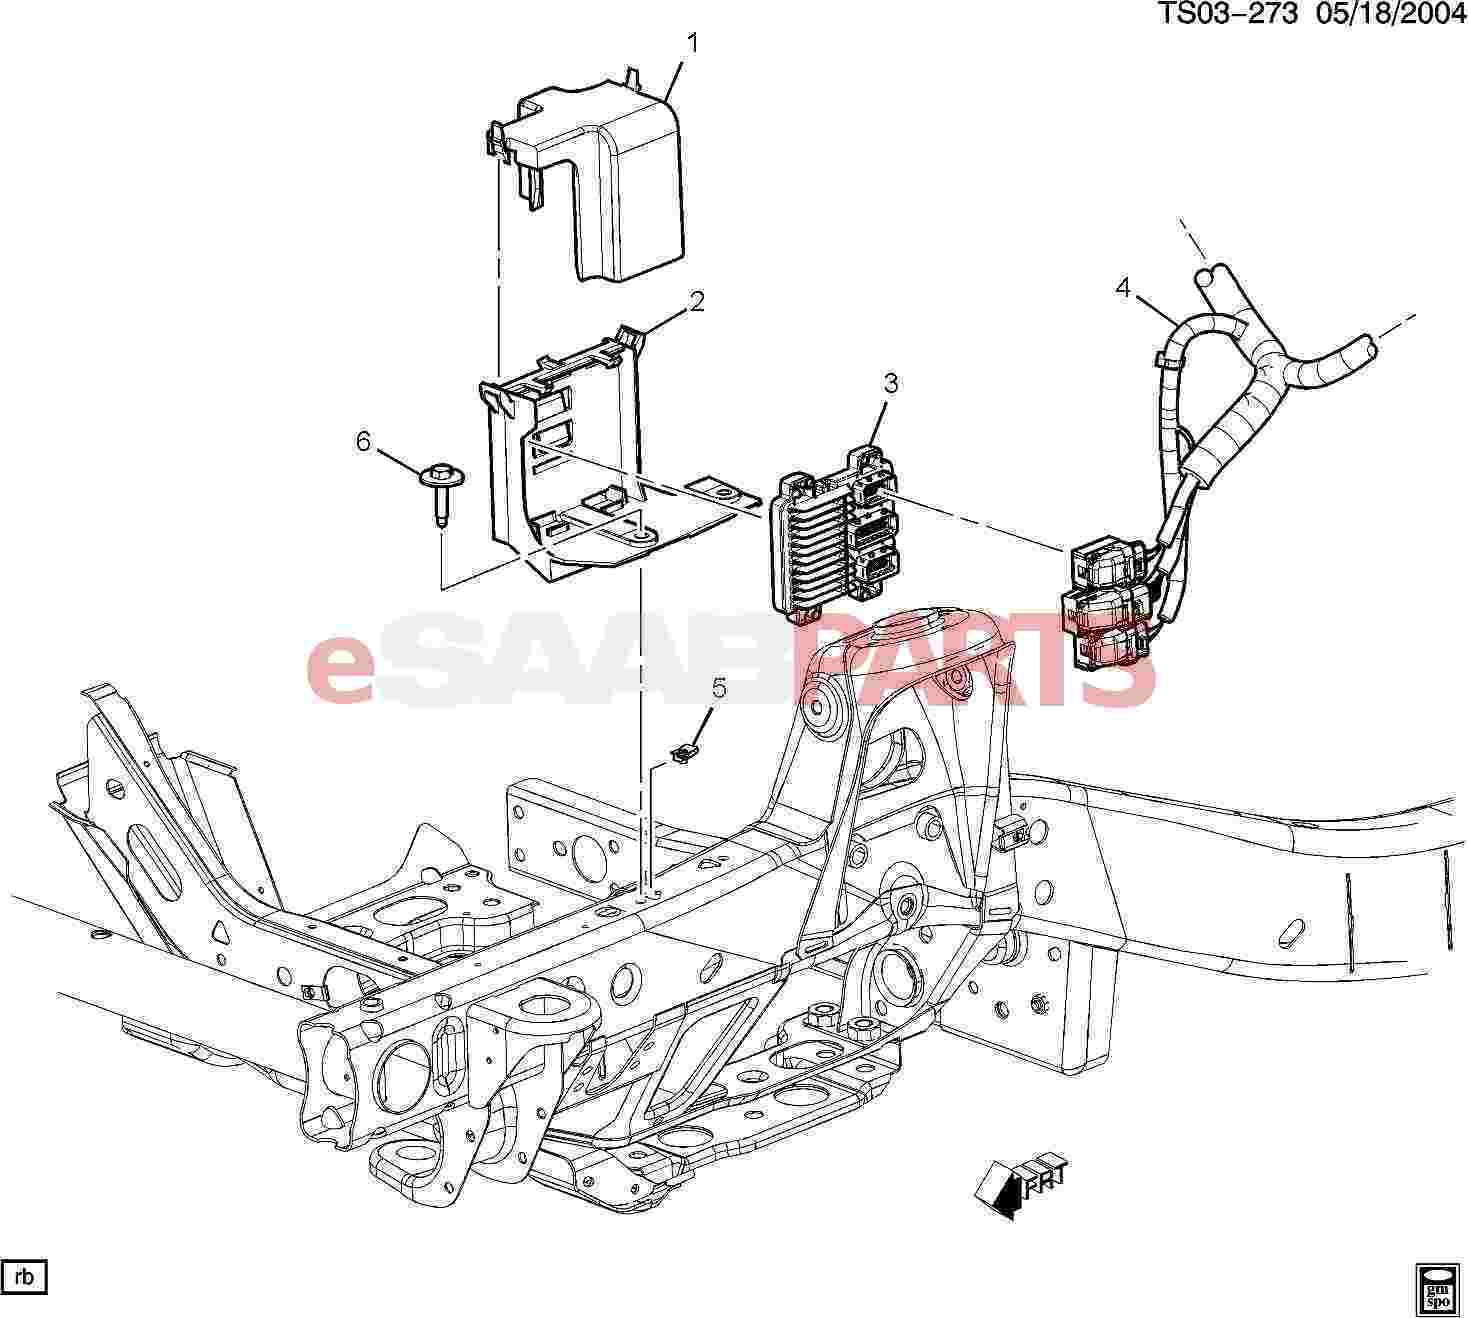 Thermostat Location On 2005 Chevy Colorado furthermore 2002 Acura Rsx Fuse Box Diagram further Jeep 4 0l Engine Parts additionally Crank Sensor Location 68932 besides 2000 Cavalier Coolant Temp Sensor Location. on saab thermostat replacement